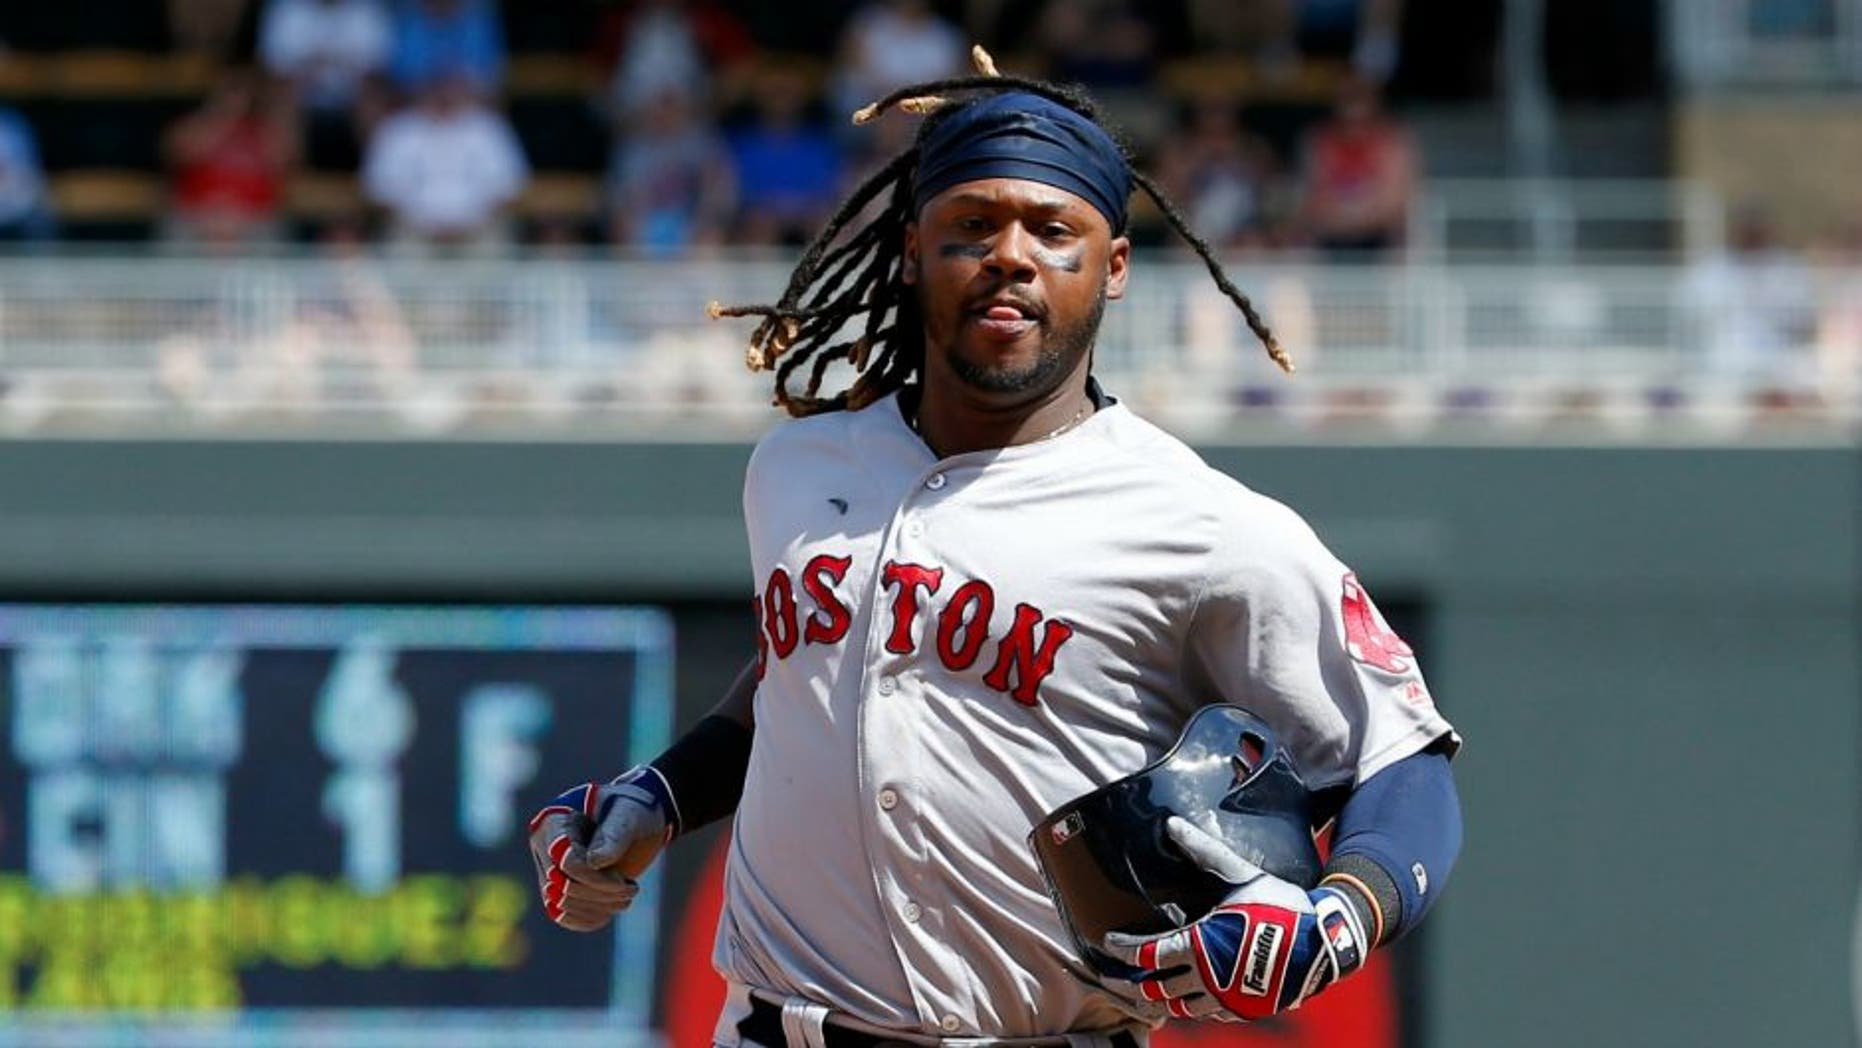 Boston Red Sox's Hanley Ramirez carries his batting helmet while running to third base on a throwing error by Minnesota Twins catcher Juan Centeno during the eighth inning of a baseball game in Minneapolis, Sunday, June 12, 2016. The Twins won 7-4. (AP Photo/Ann Heisenfelt)